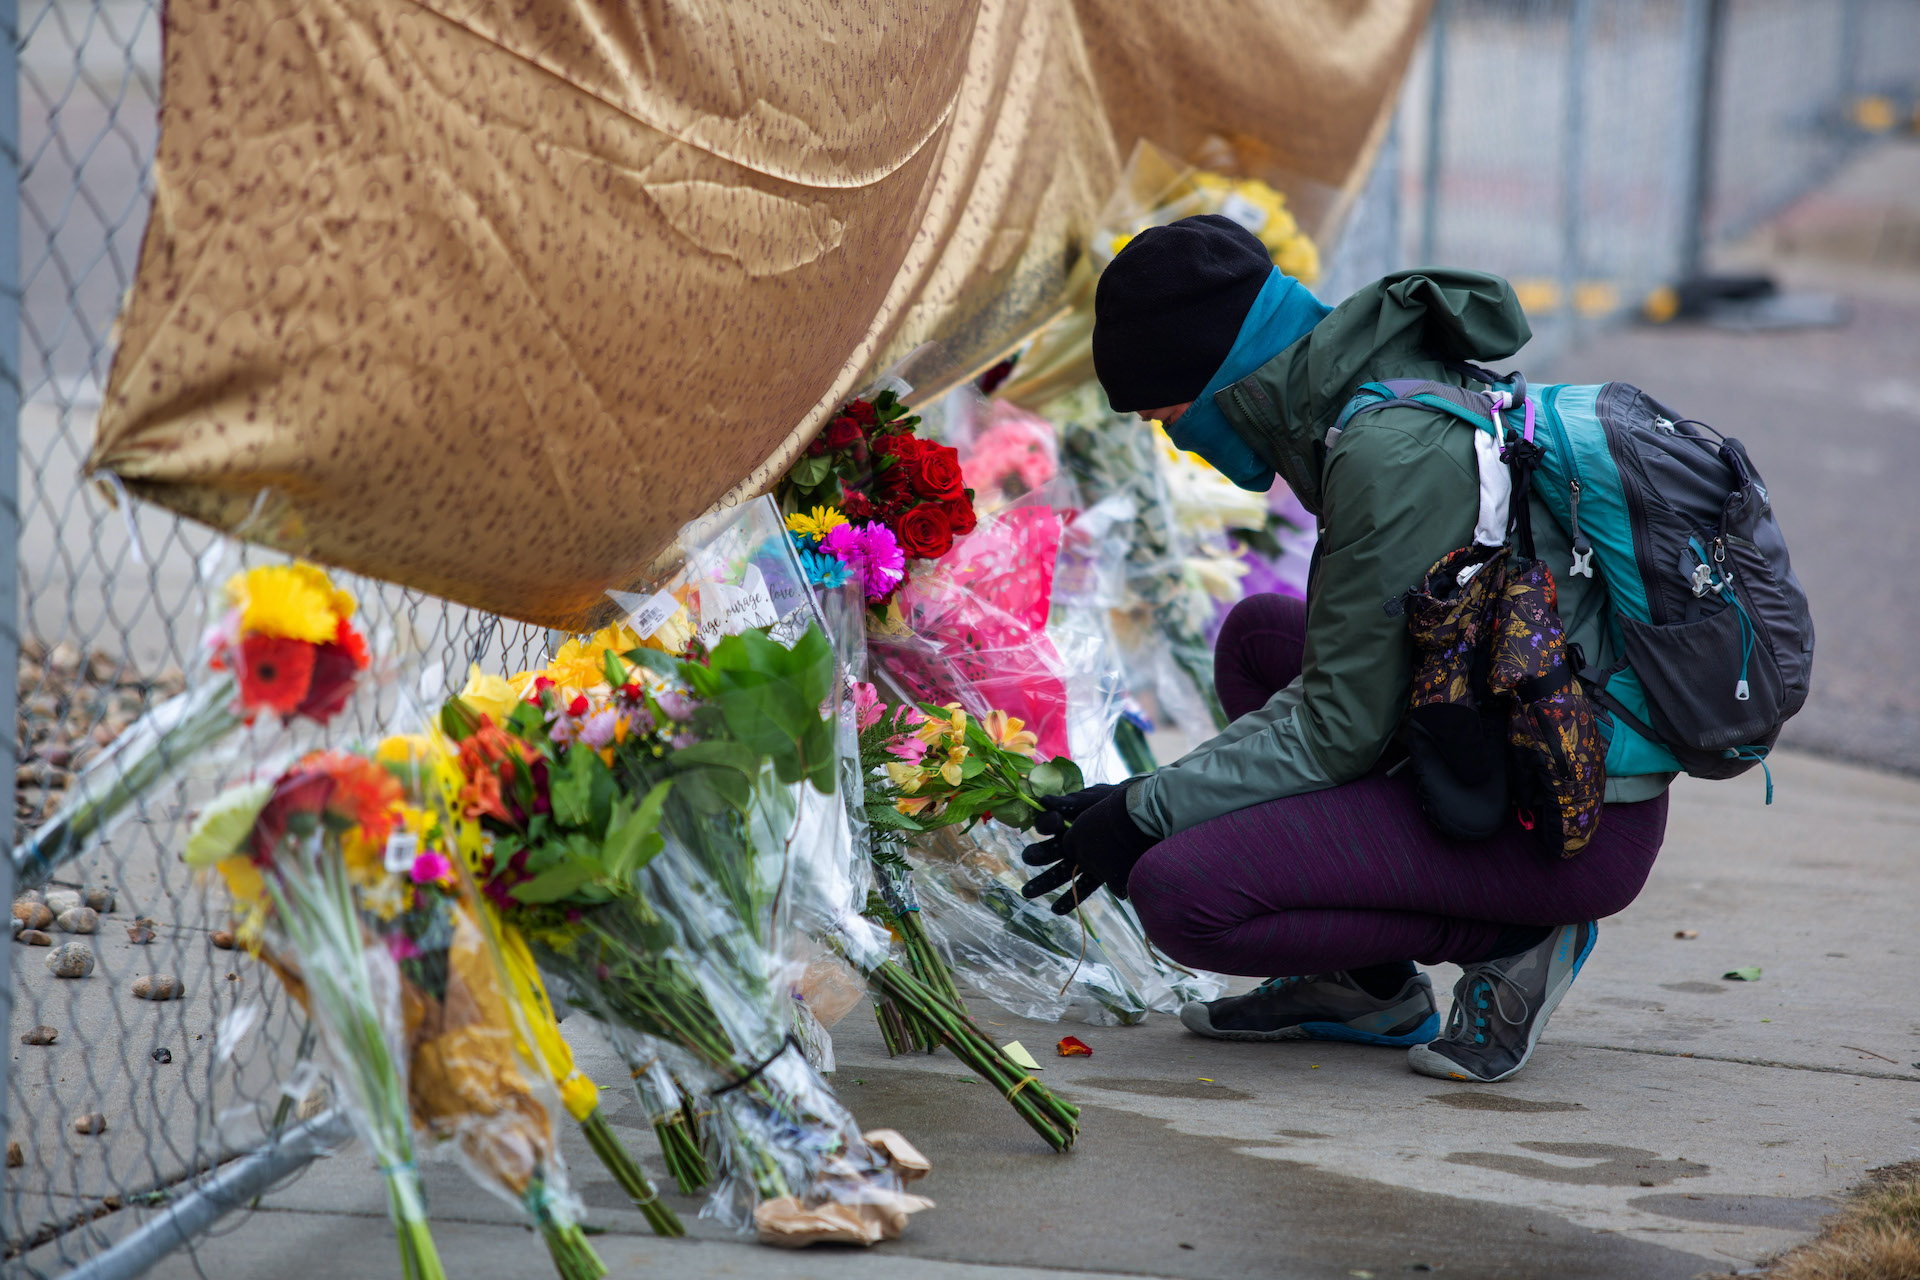 Boulder shooting prompts calls from Democrats for assault weapons ban in Colorado